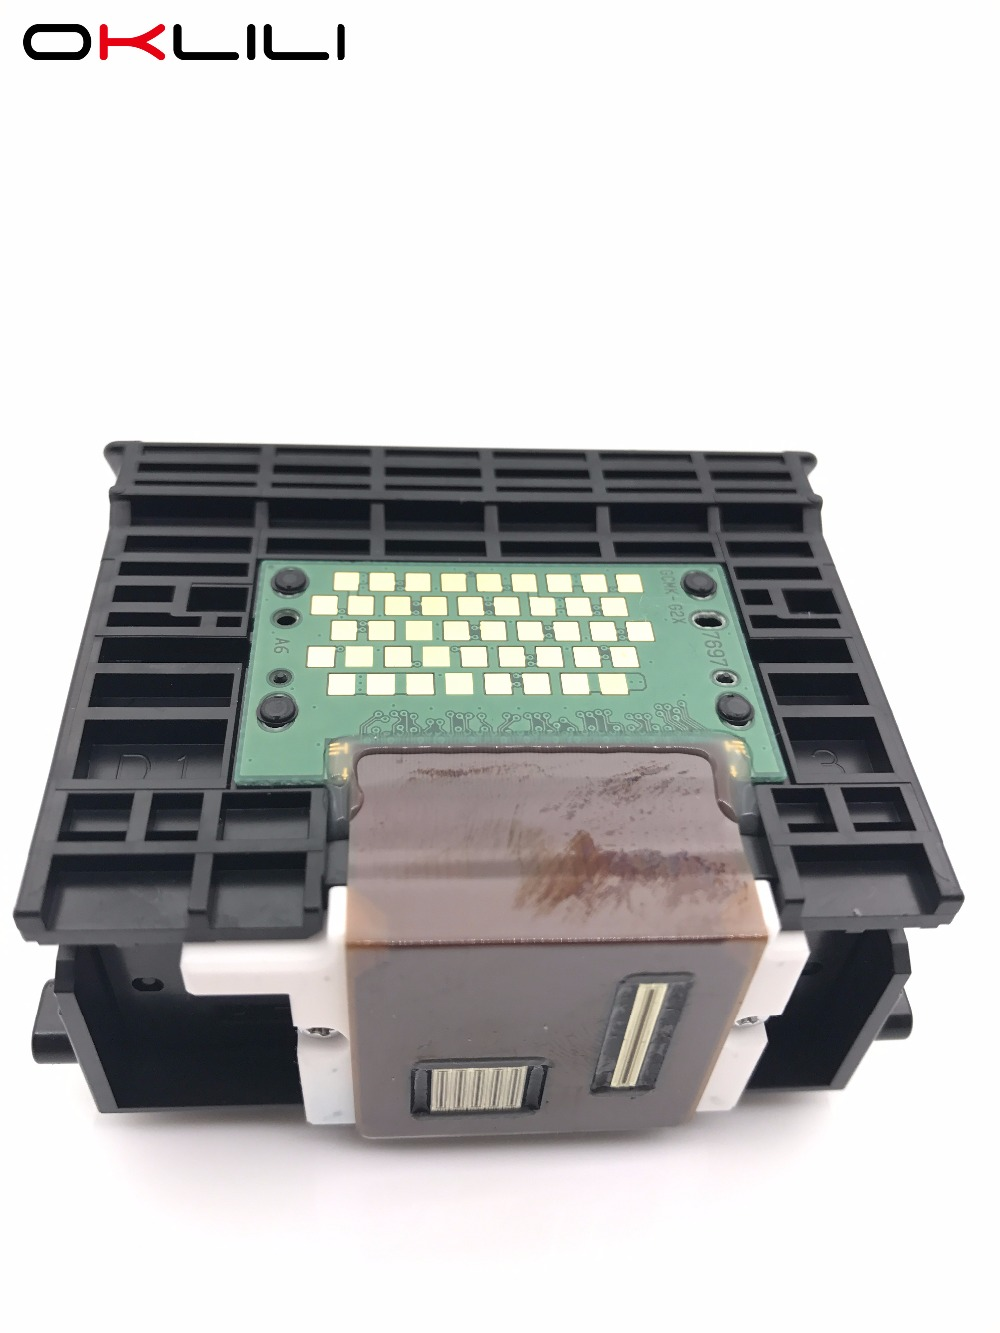 OKLILI ORIGINAL QY6-0070 QY6-0070-000 Printhead Print Head Printer Head for Canon MP510 MP520 MX700 iP3300 iP3500 oklili original qy6 0045 qy6 0045 000 printhead print head printer head for canon i550 pixus 550i